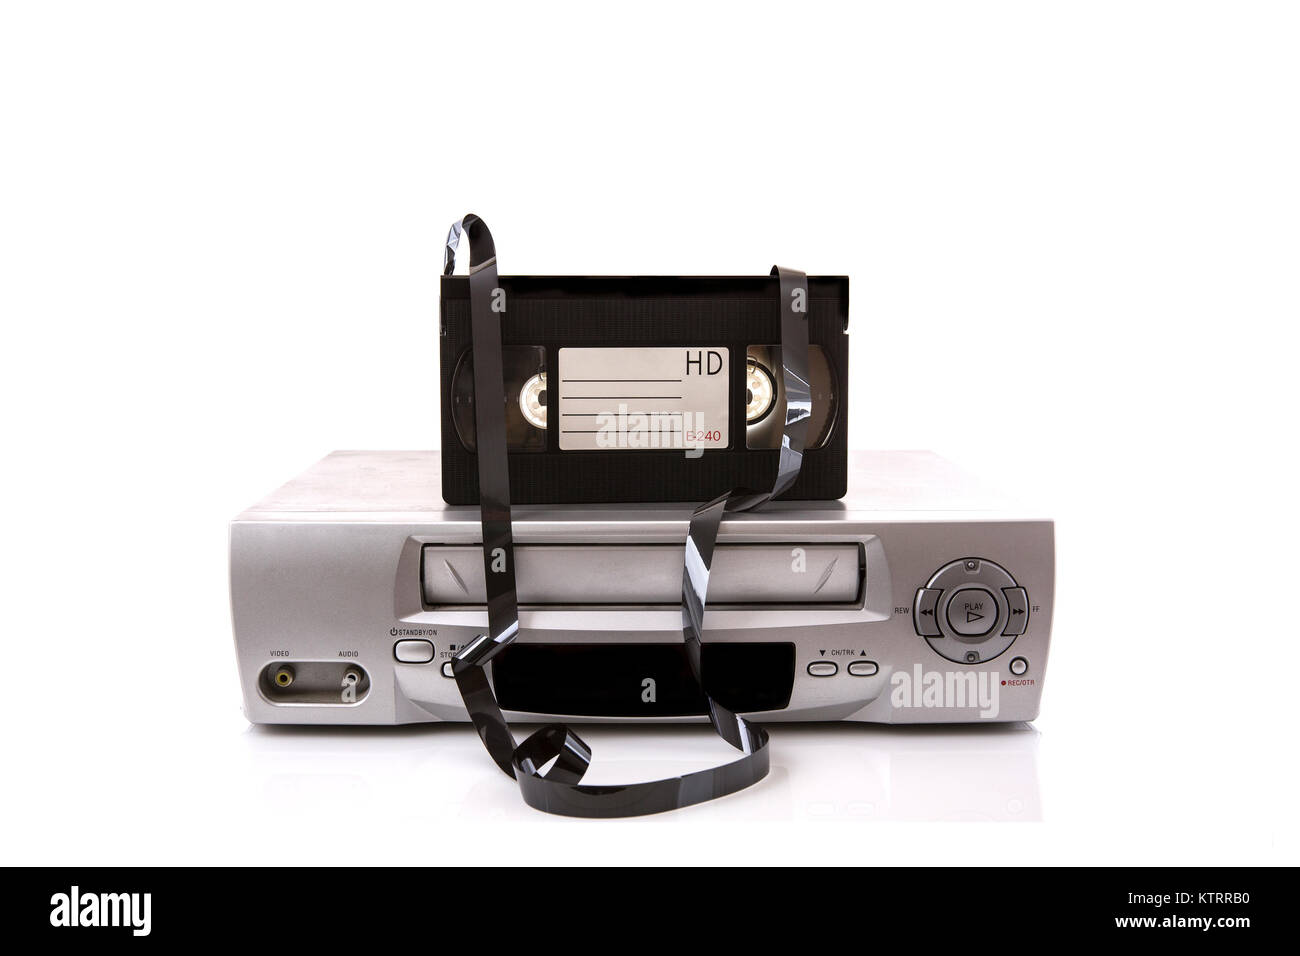 Old VHS Video recorder with tape on a white background with copy space - Stock Image